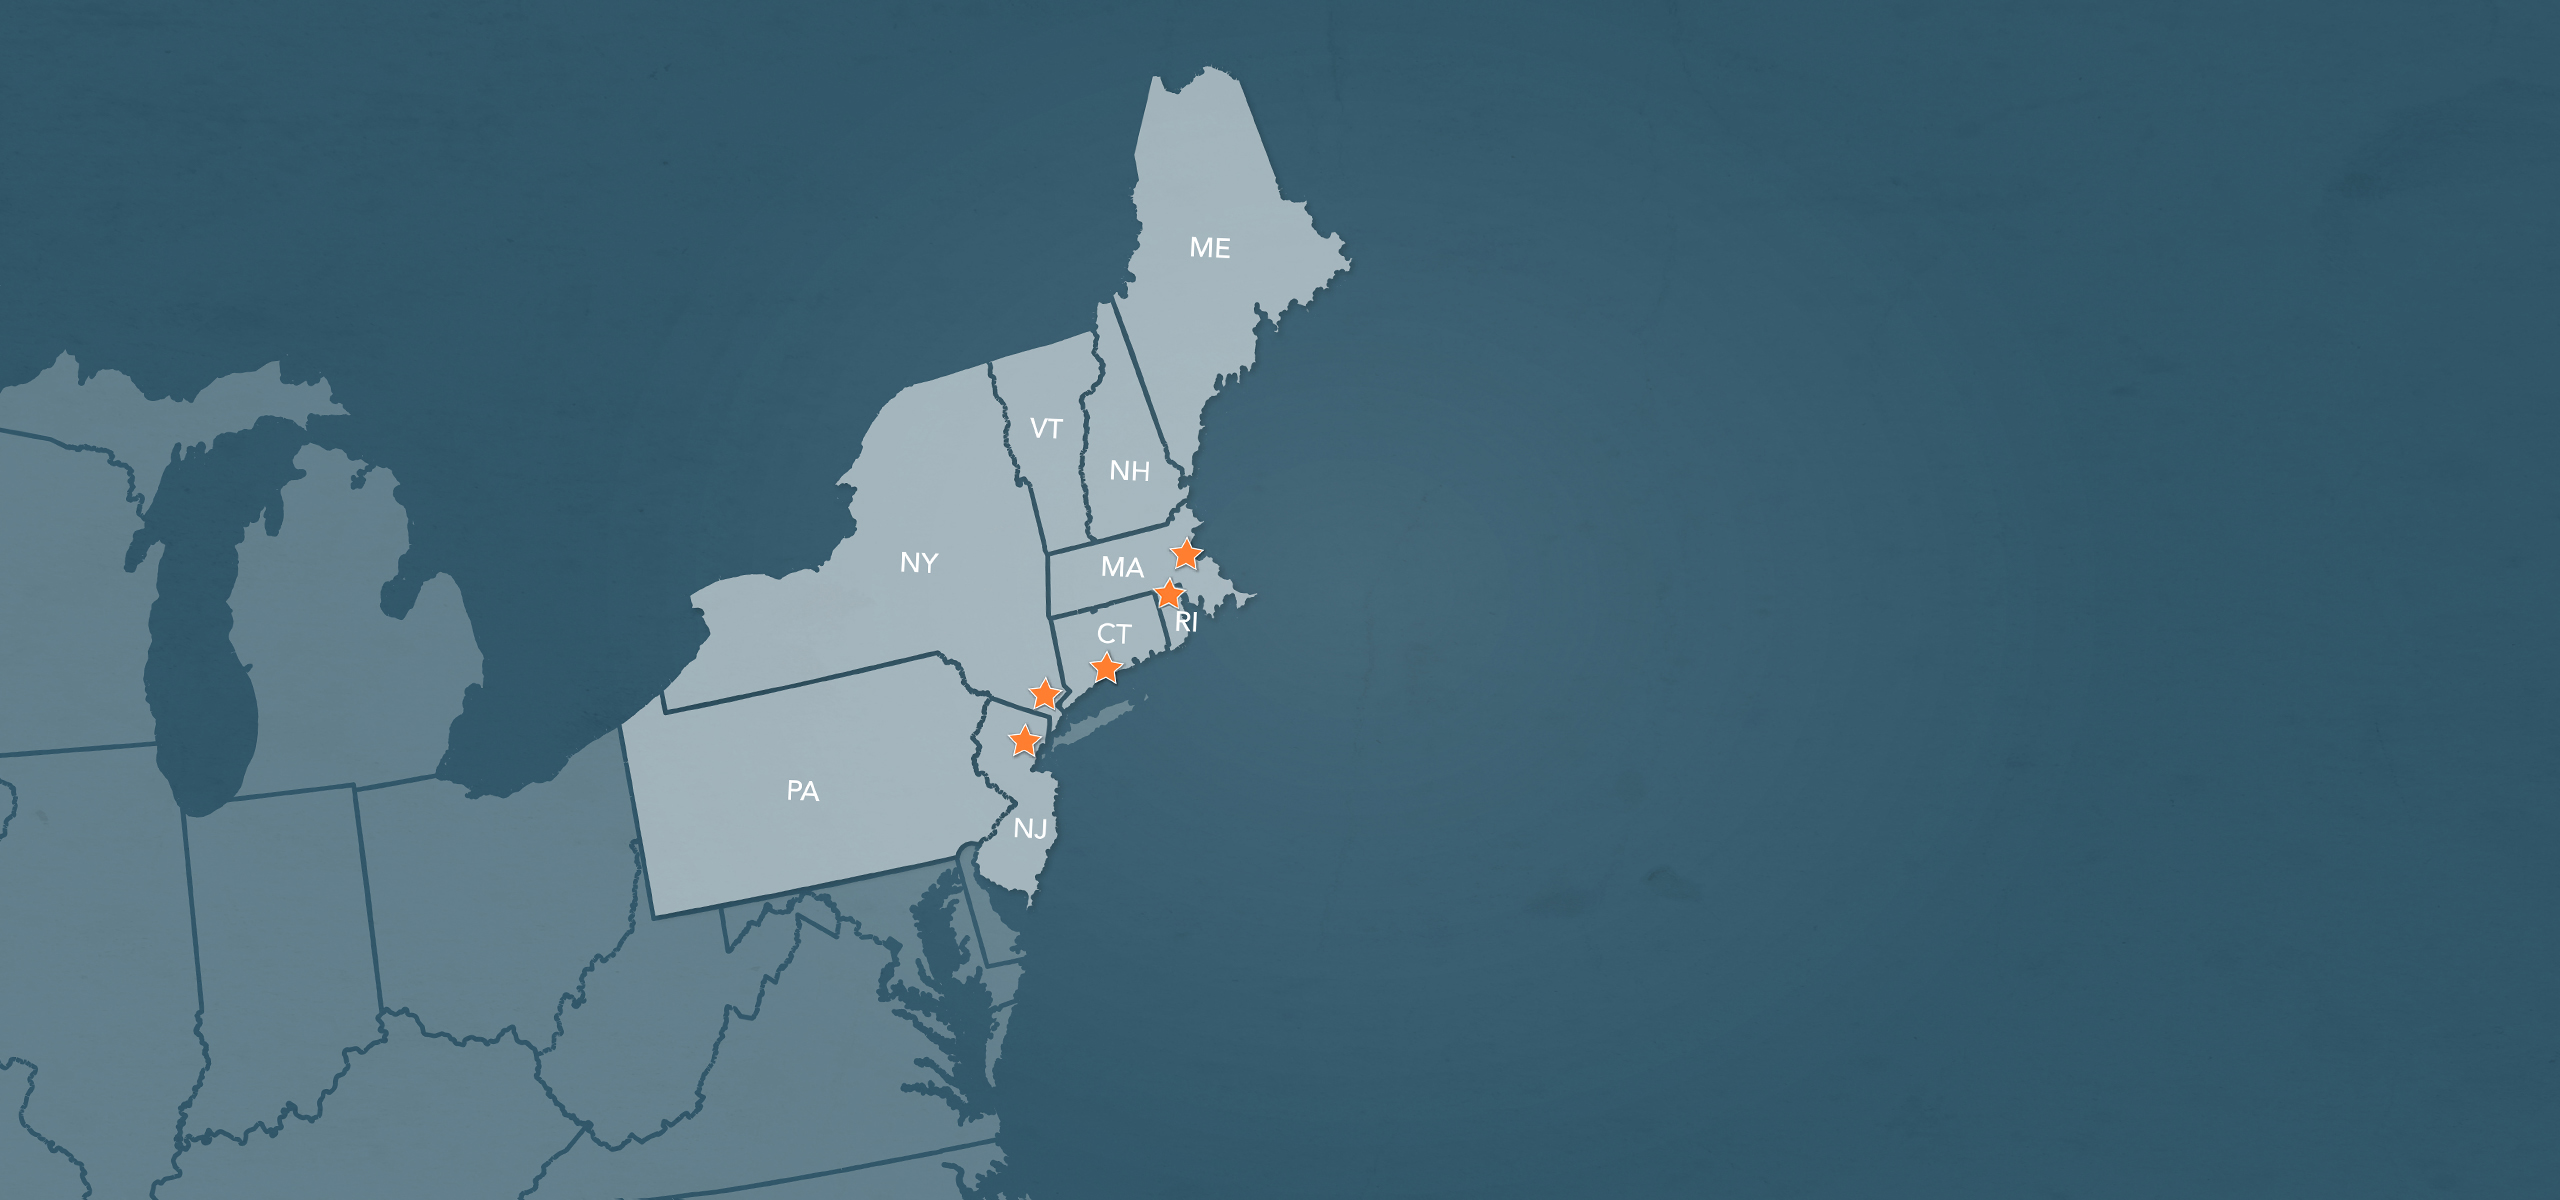 Our Regions in the Northeast